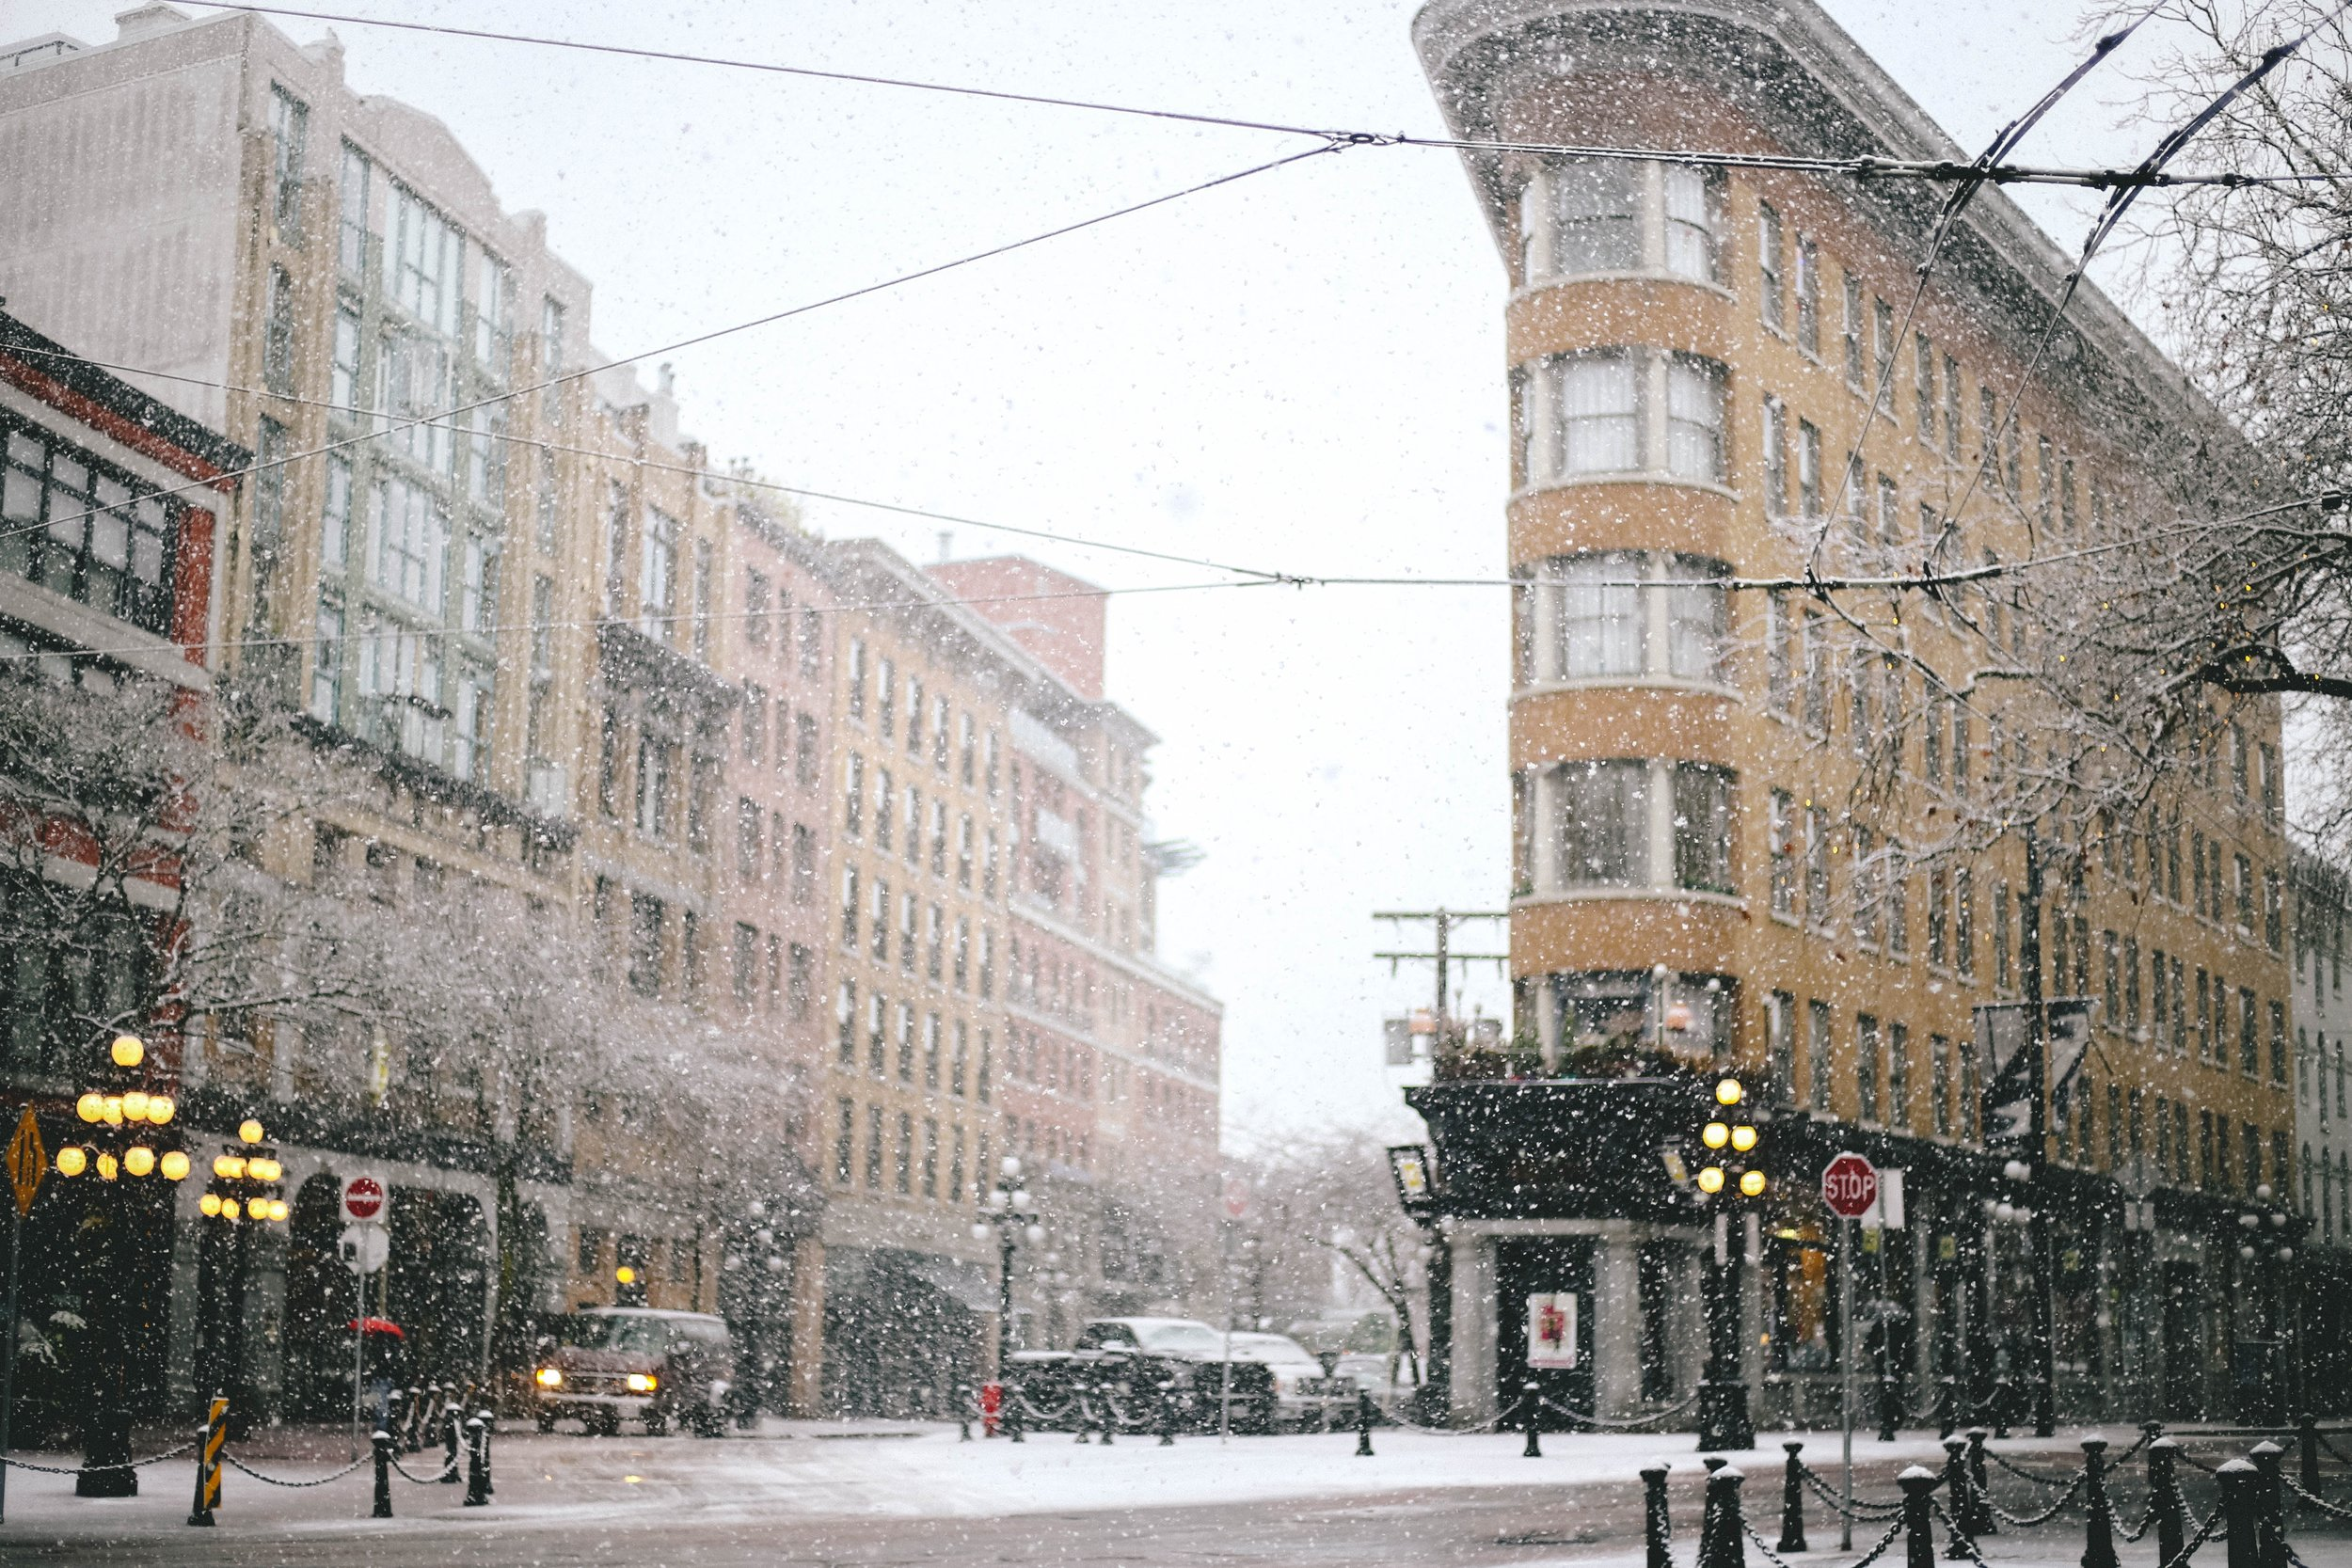 Snowing in Gastown